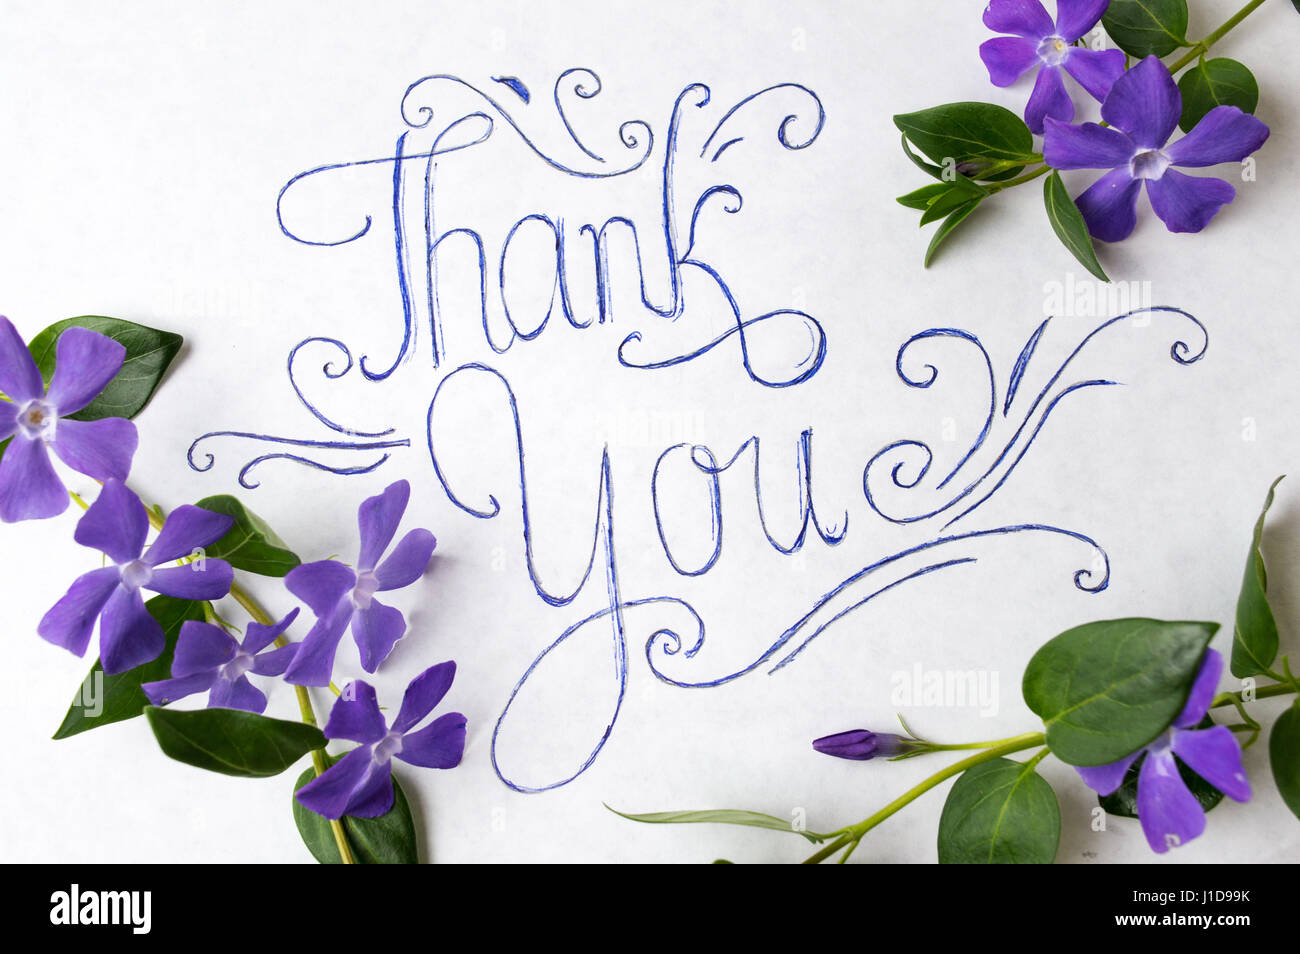 thank you note flowers stock photos amp thank you note